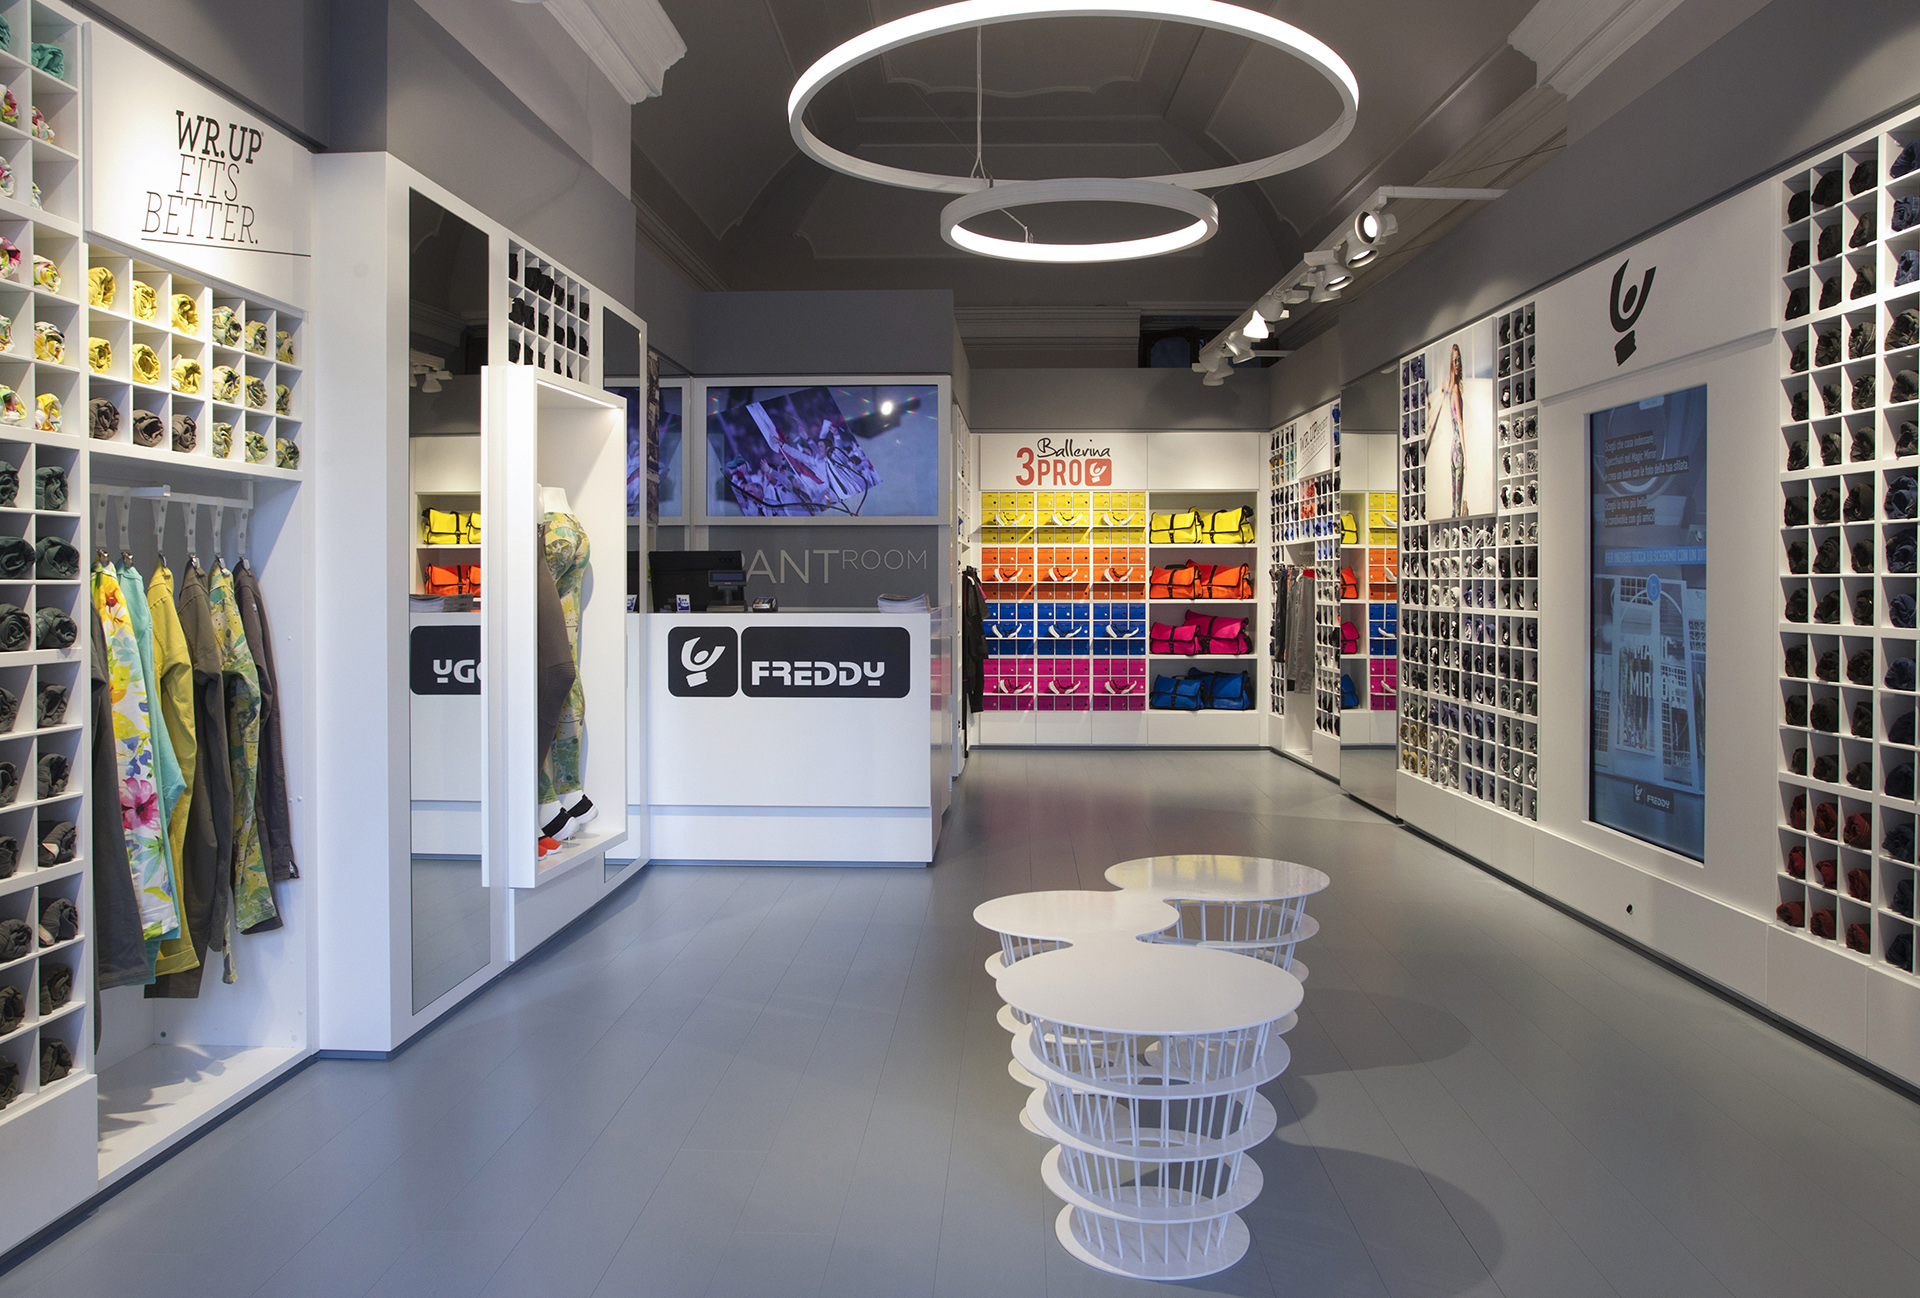 Freddy pantroom retail design